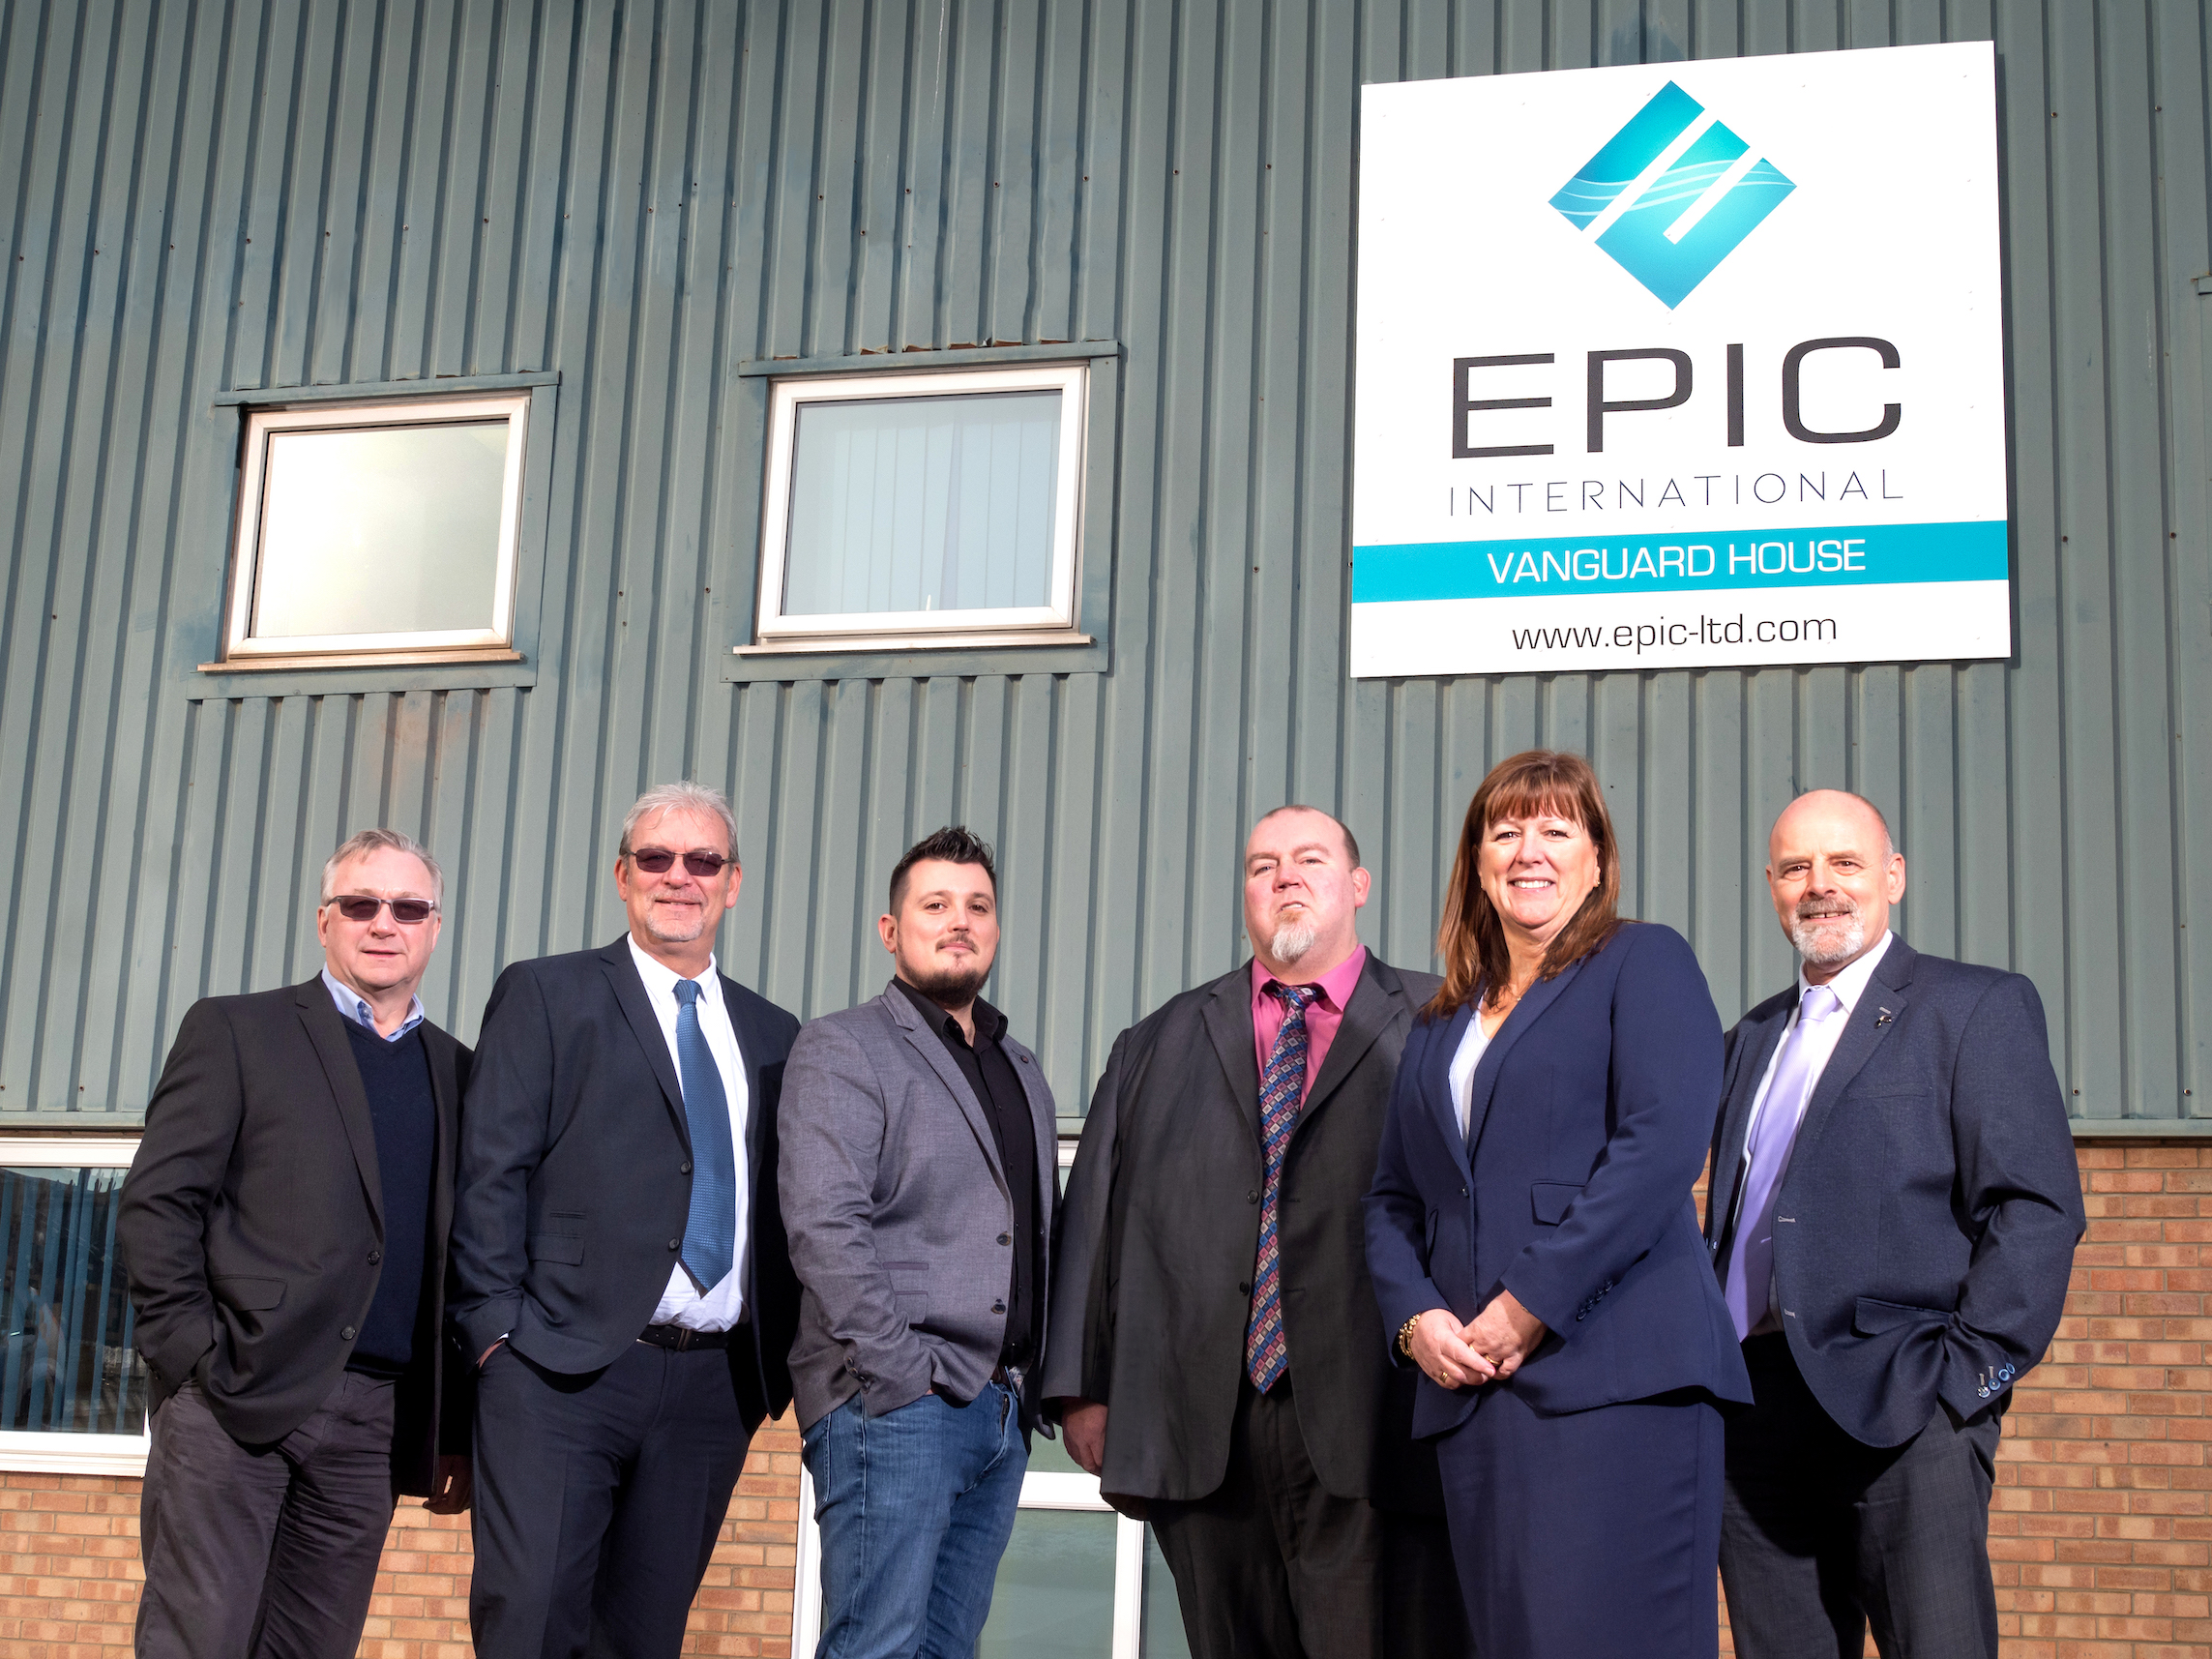 Epic International's new management team with the refreshed company branding. From left to right: Adrian Hak, general manager, Mick Miller, operations manager, Dane Rowan, Ian Littlewood, business development manager, Kim Rowan, managing director, and Paul Martins, finance and commercial director.